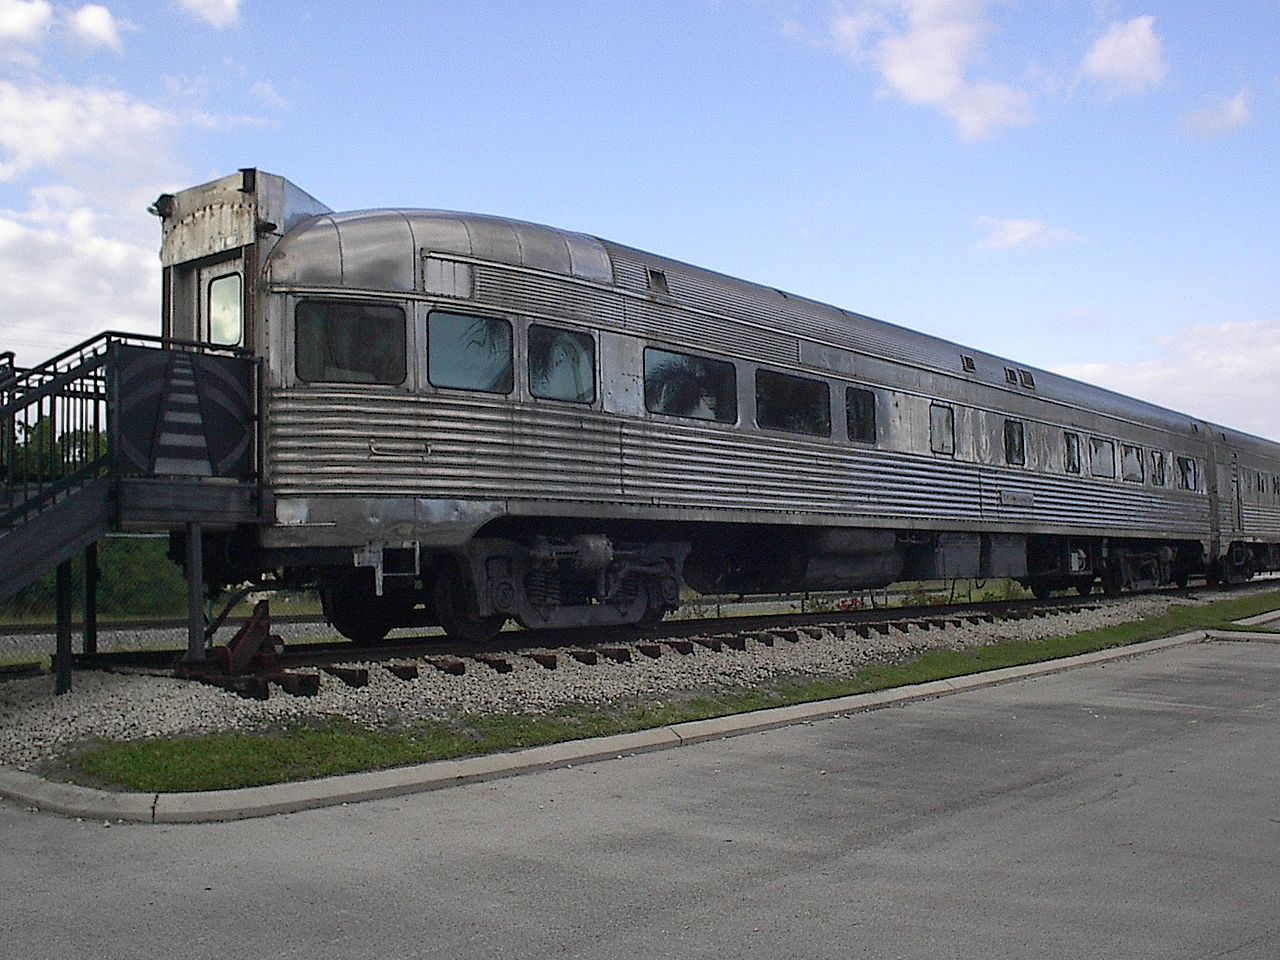 One two of the railcars on display at the museum. Visitors are allowed to go inside both.